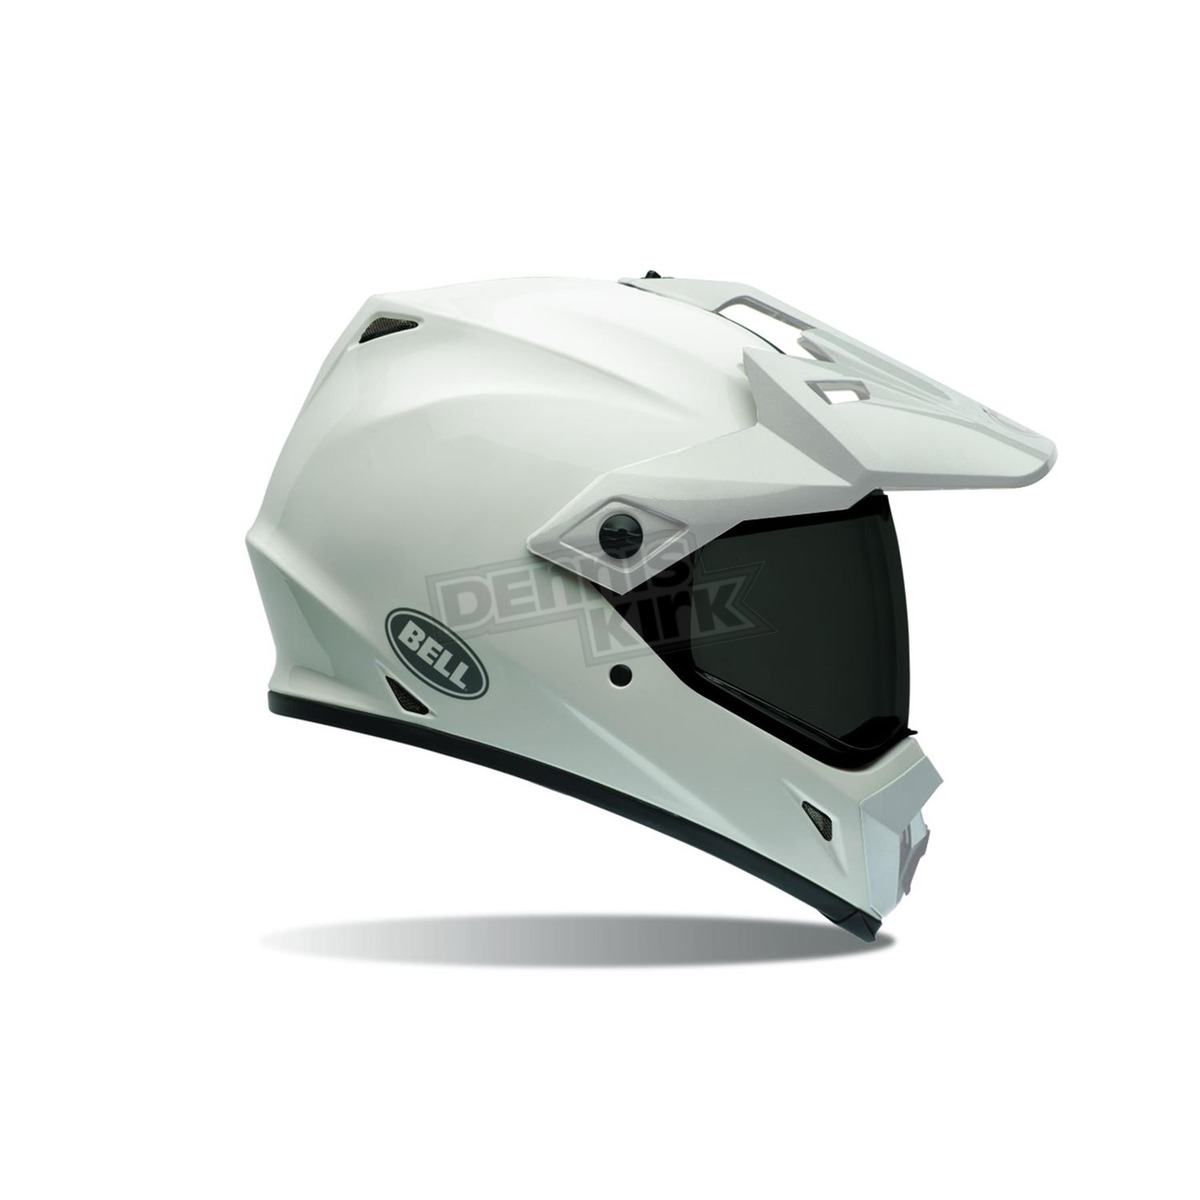 bell helmets white mx 9 adventure helmet 7070625 atv dirt bike dennis kirk inc. Black Bedroom Furniture Sets. Home Design Ideas